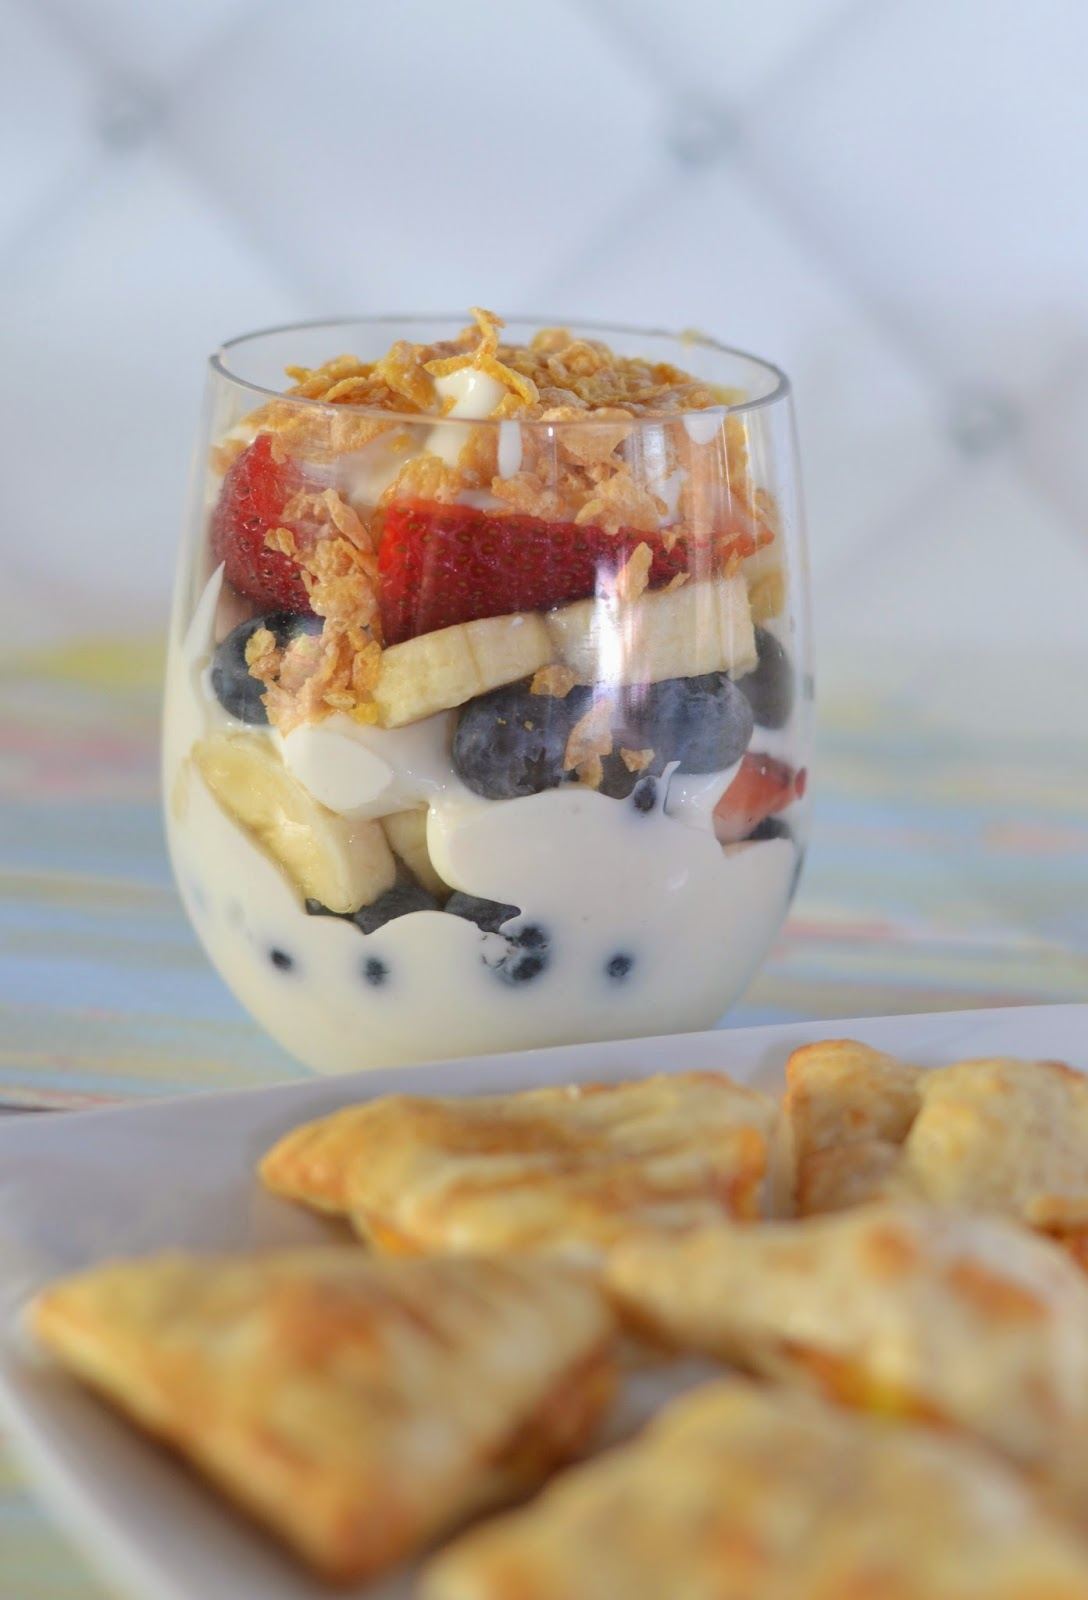 Hot Pockets Breakfast and Snack Bites.  Yogurt Parfait ideas.  Easy snack ideas for kids.  Hot Pocket Bites. HOT POCKETS® Snack Bites AND Breakfast Bites